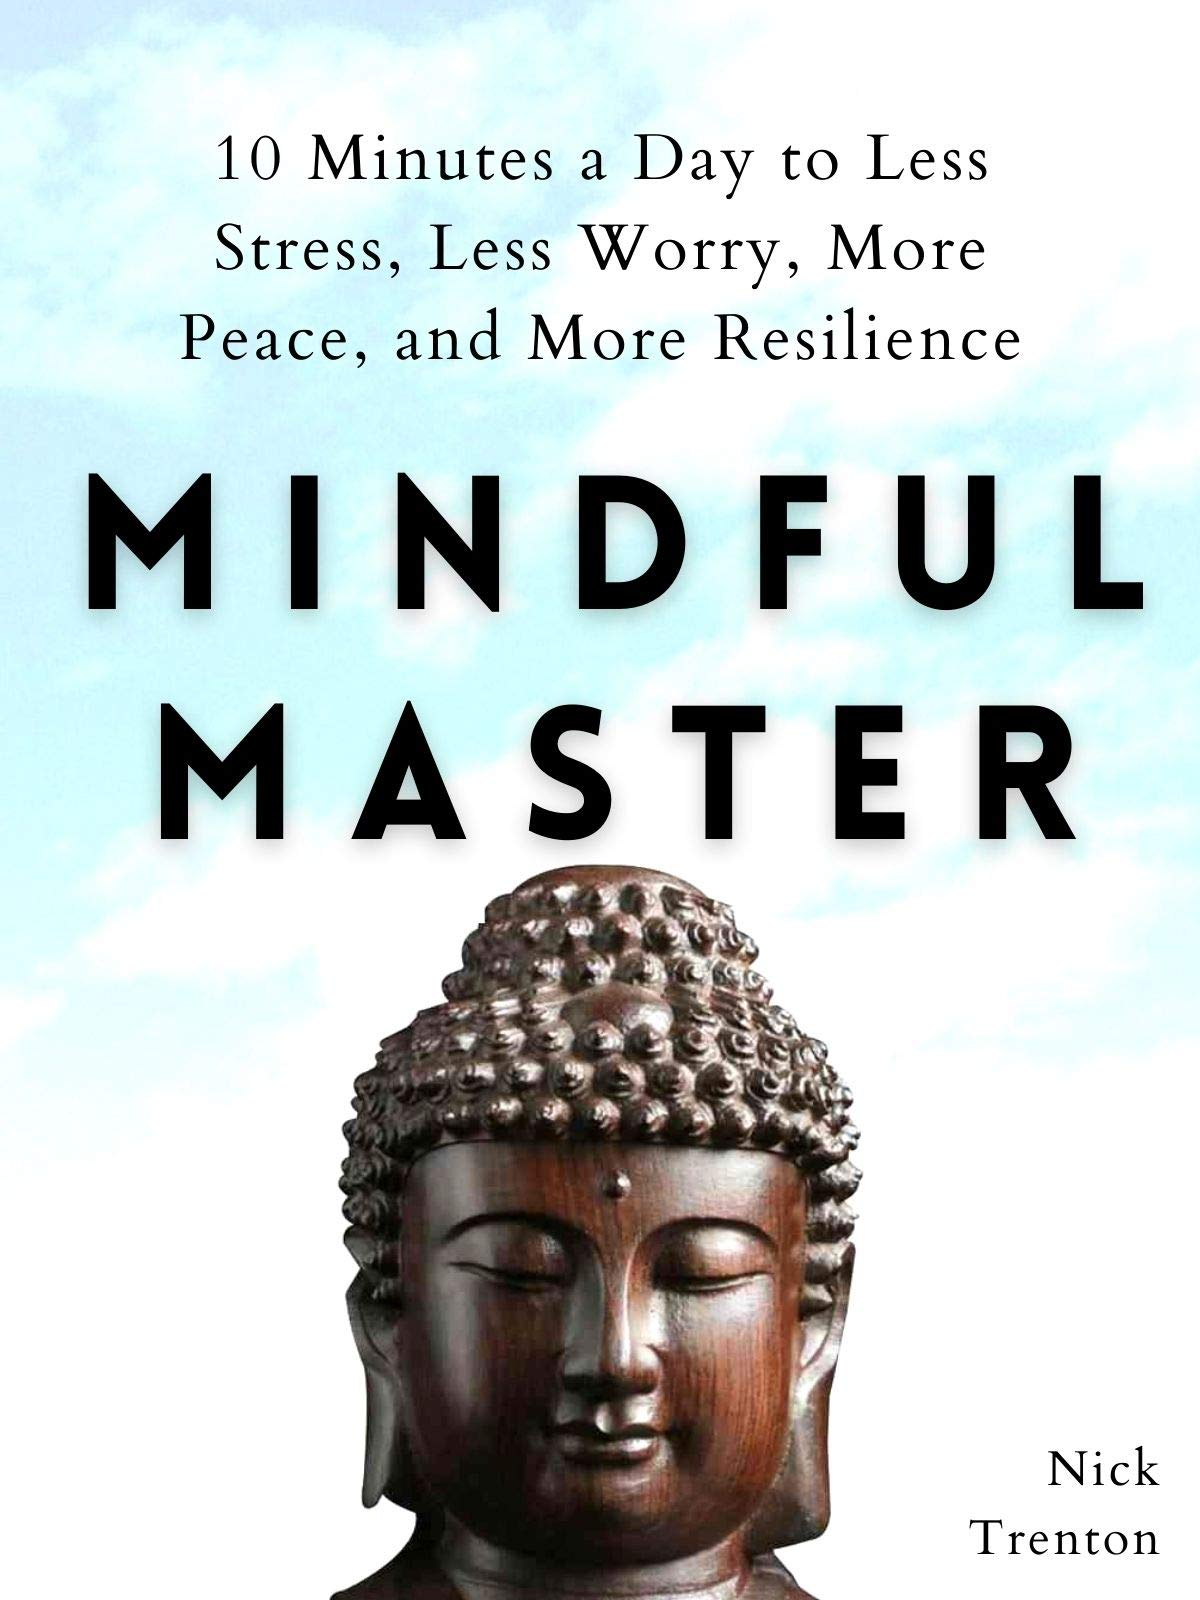 Mindful Master: 10 Minutes a Day to Less Stress, Less Worry, More Peace, and More Resilience (Mental and Emotional Abundance Book 3)